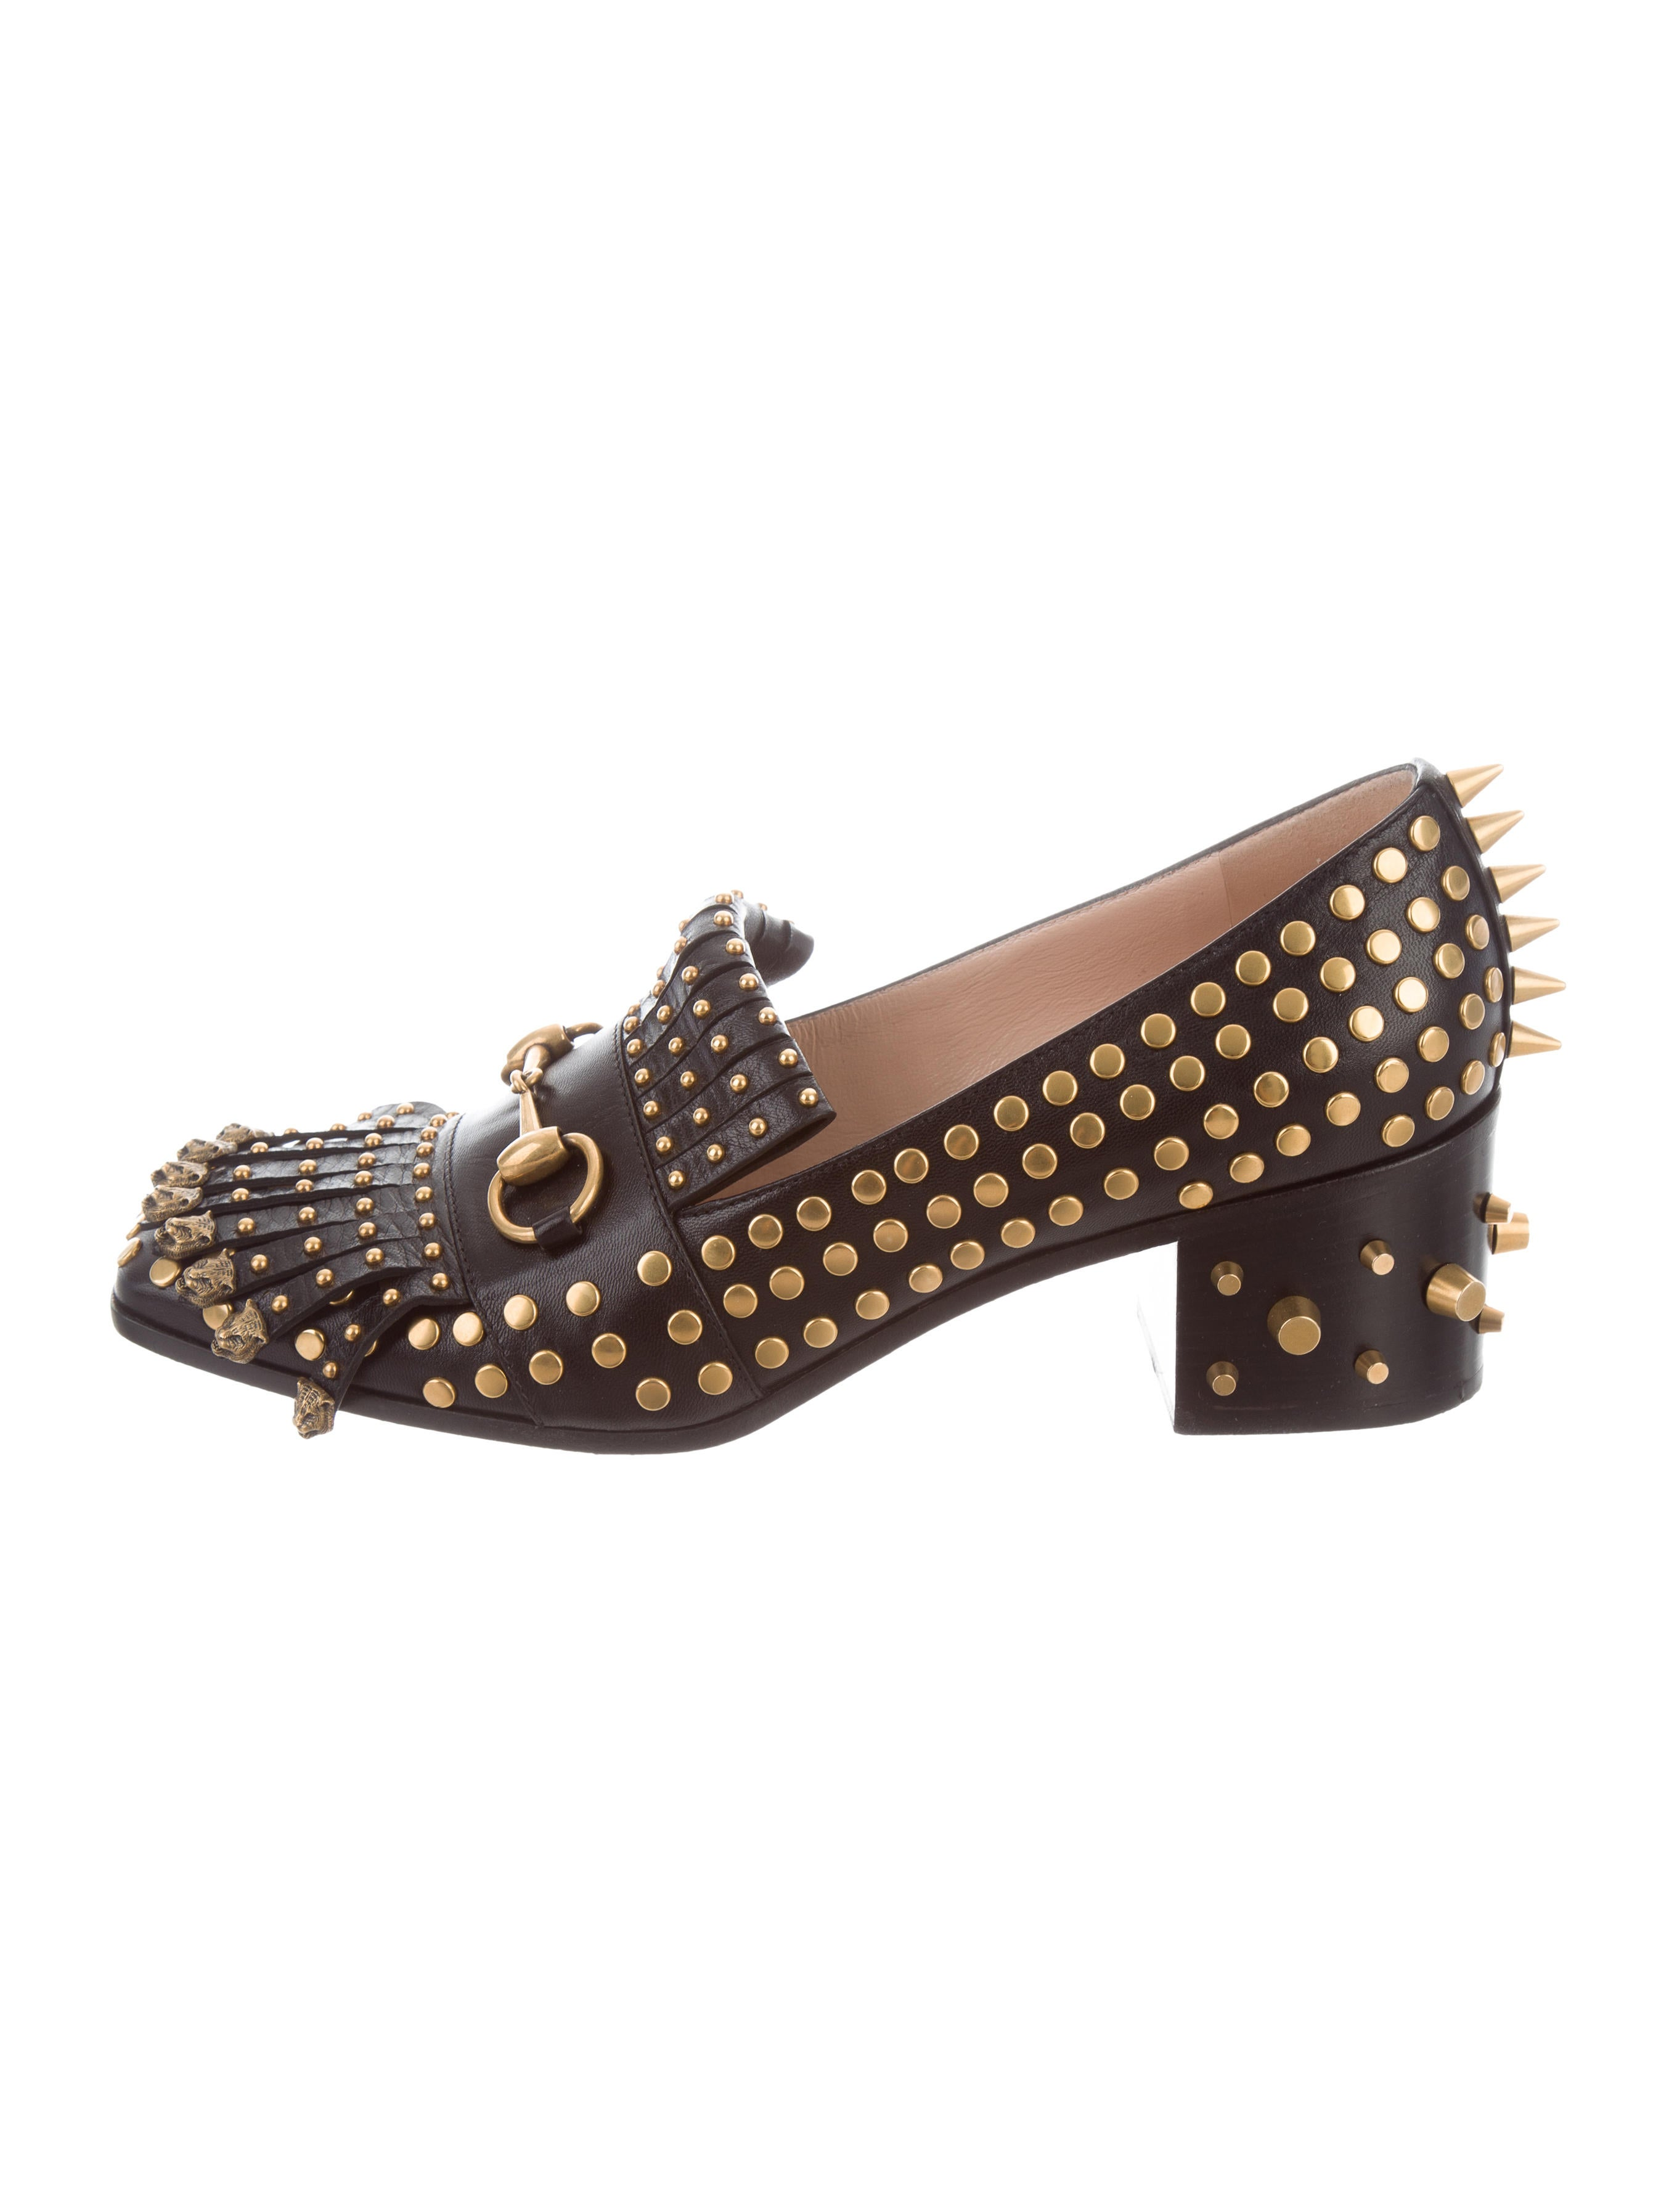 64afeb11ae5 Gucci Polly Studded Loafers - Shoes - GUC185539